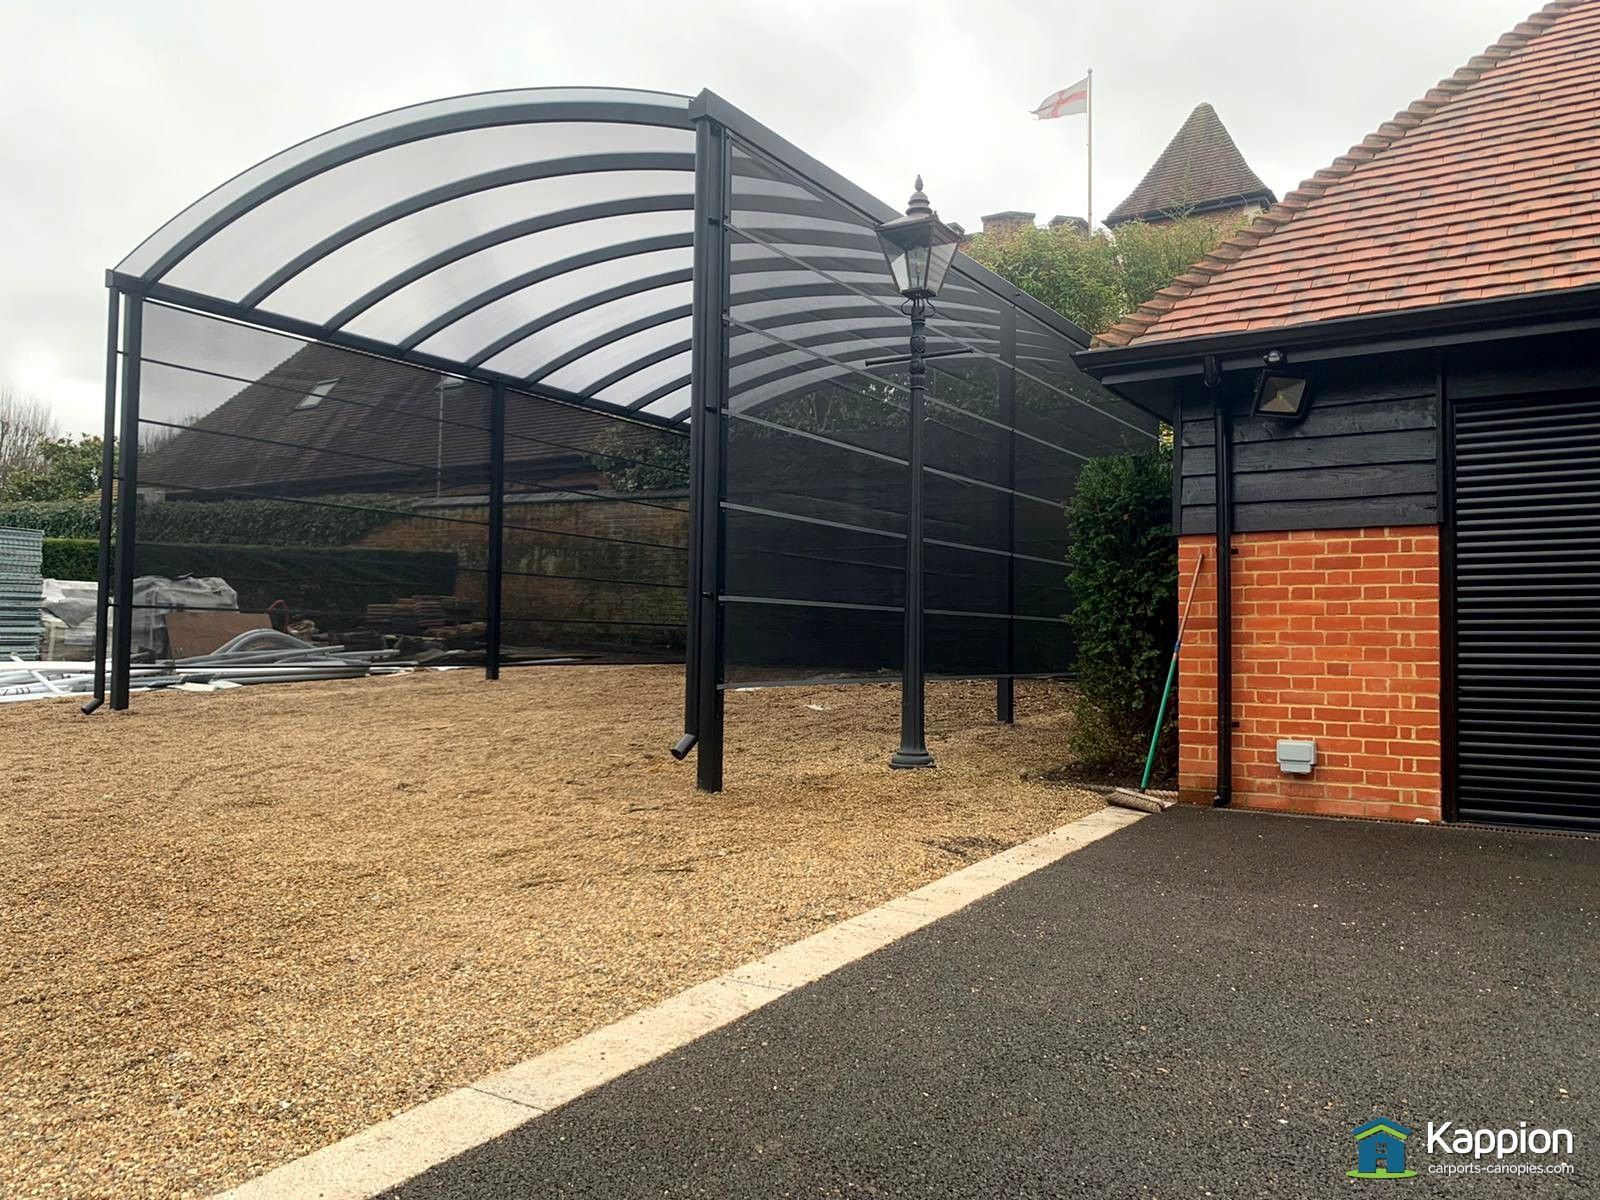 Motorhome Canopy Installed In Surrey By Kappion Carports Canopies In 2020 Carport Canopy Canopy Outdoor Carport Designs